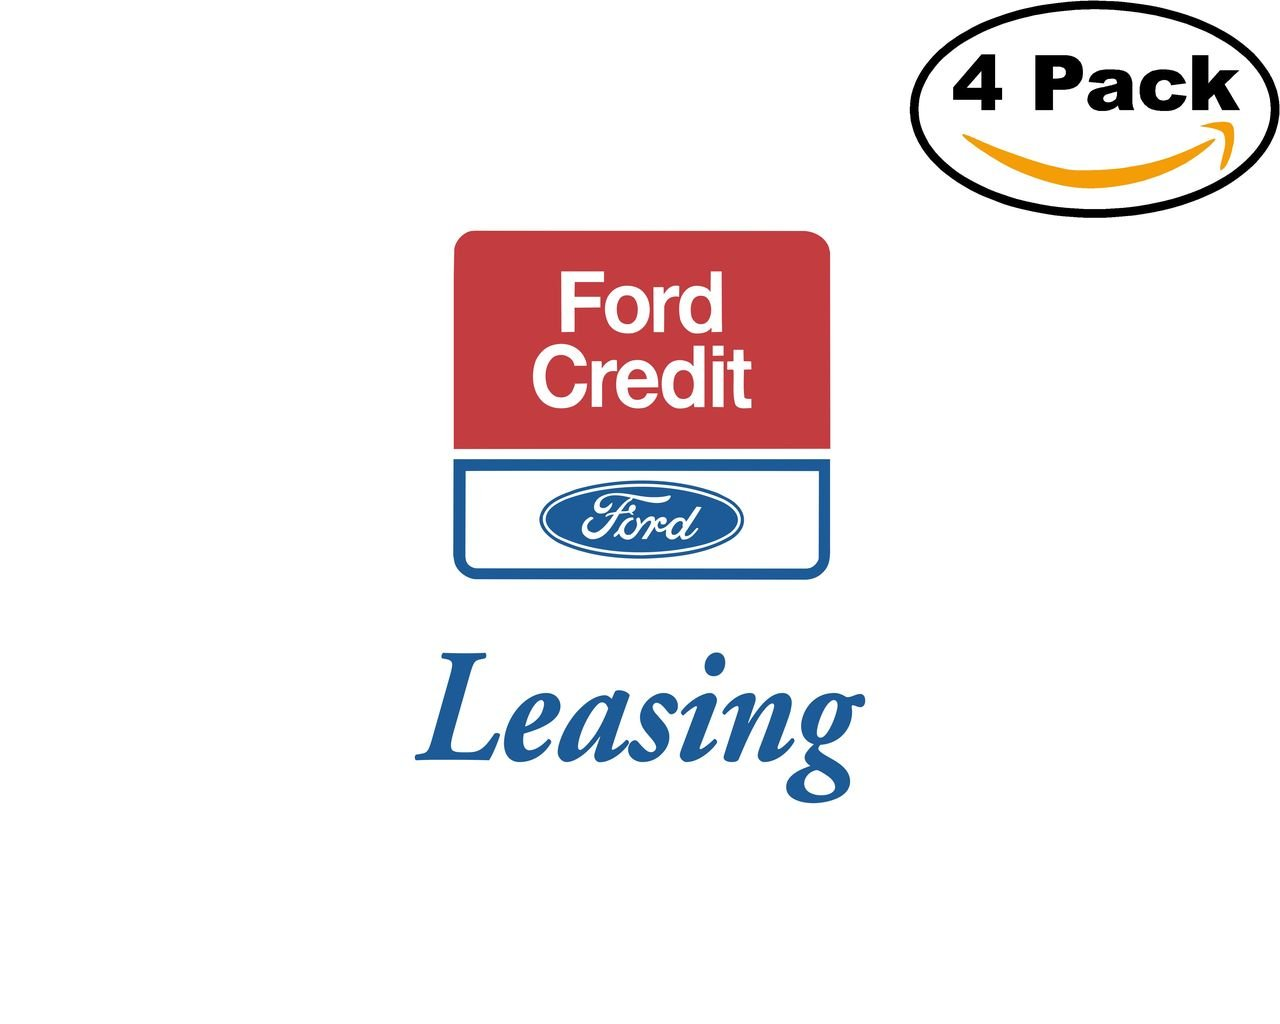 Amazon com ford credit 1 4 stickers 4x4 inches car bumper window sticker decal